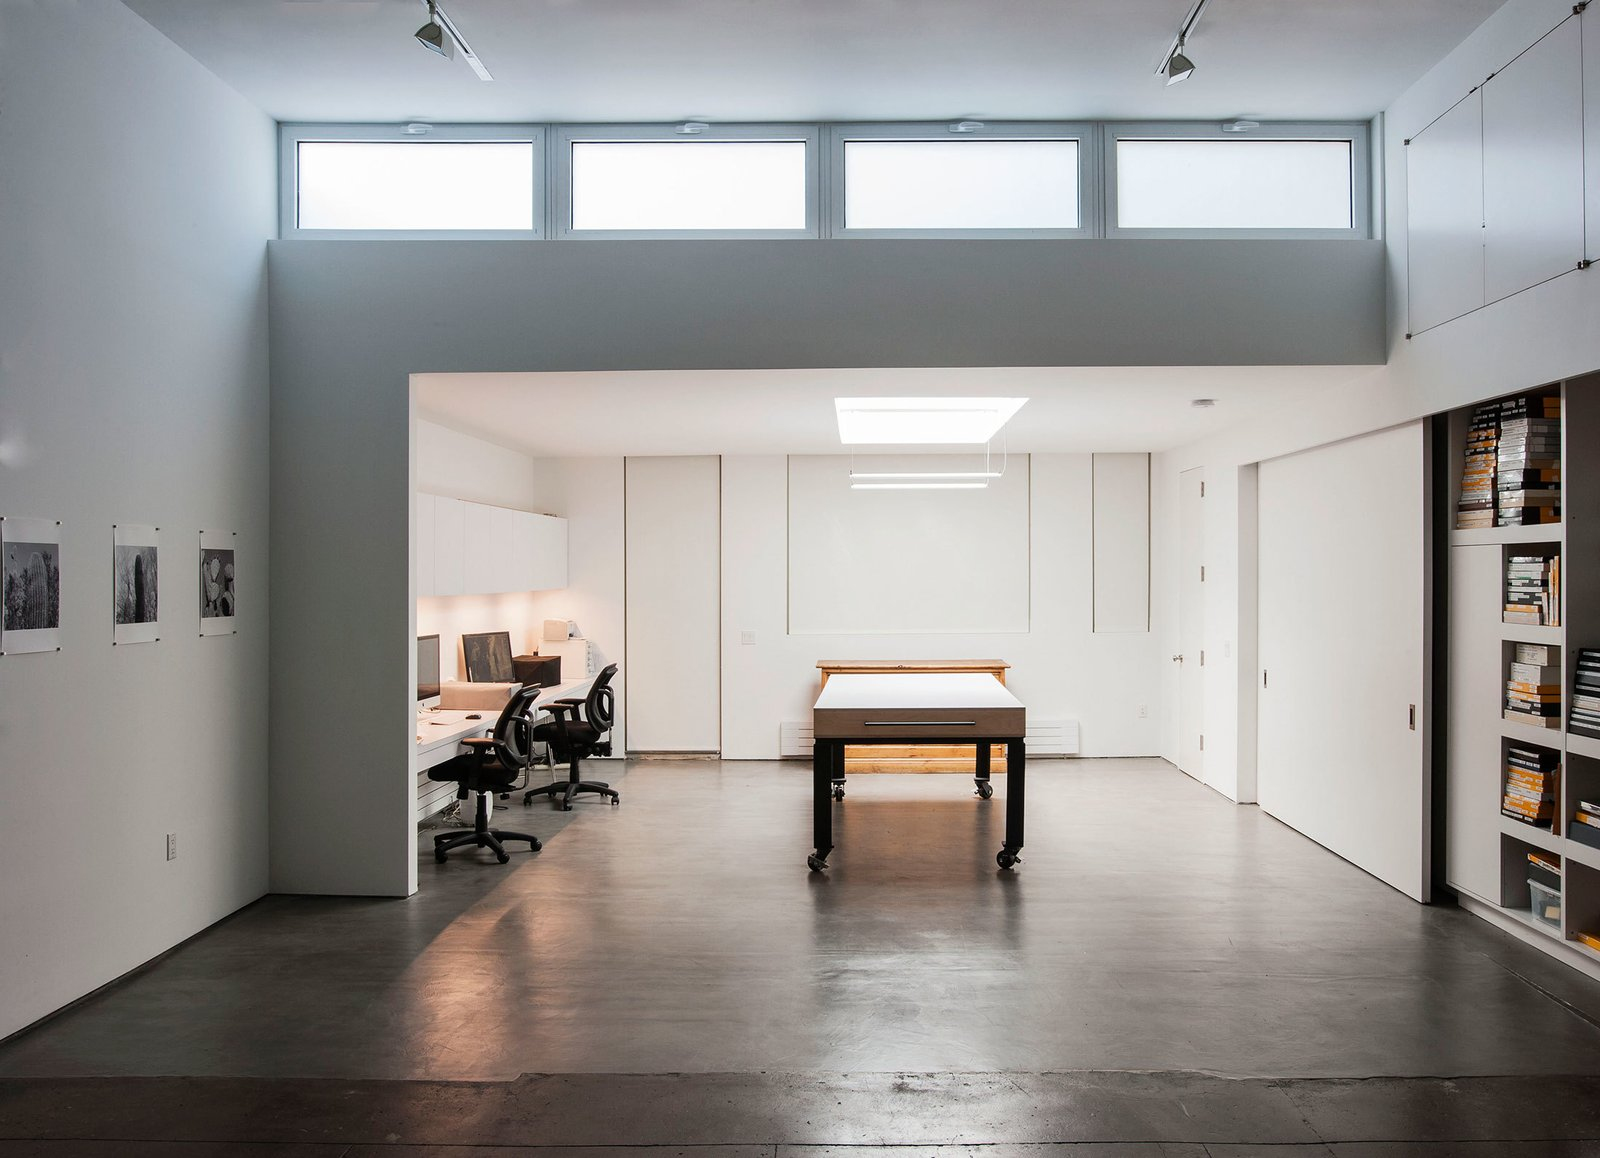 Photo 3 of 9 in A 19th Century Firehouse Becomes a Three-Story Modern Home